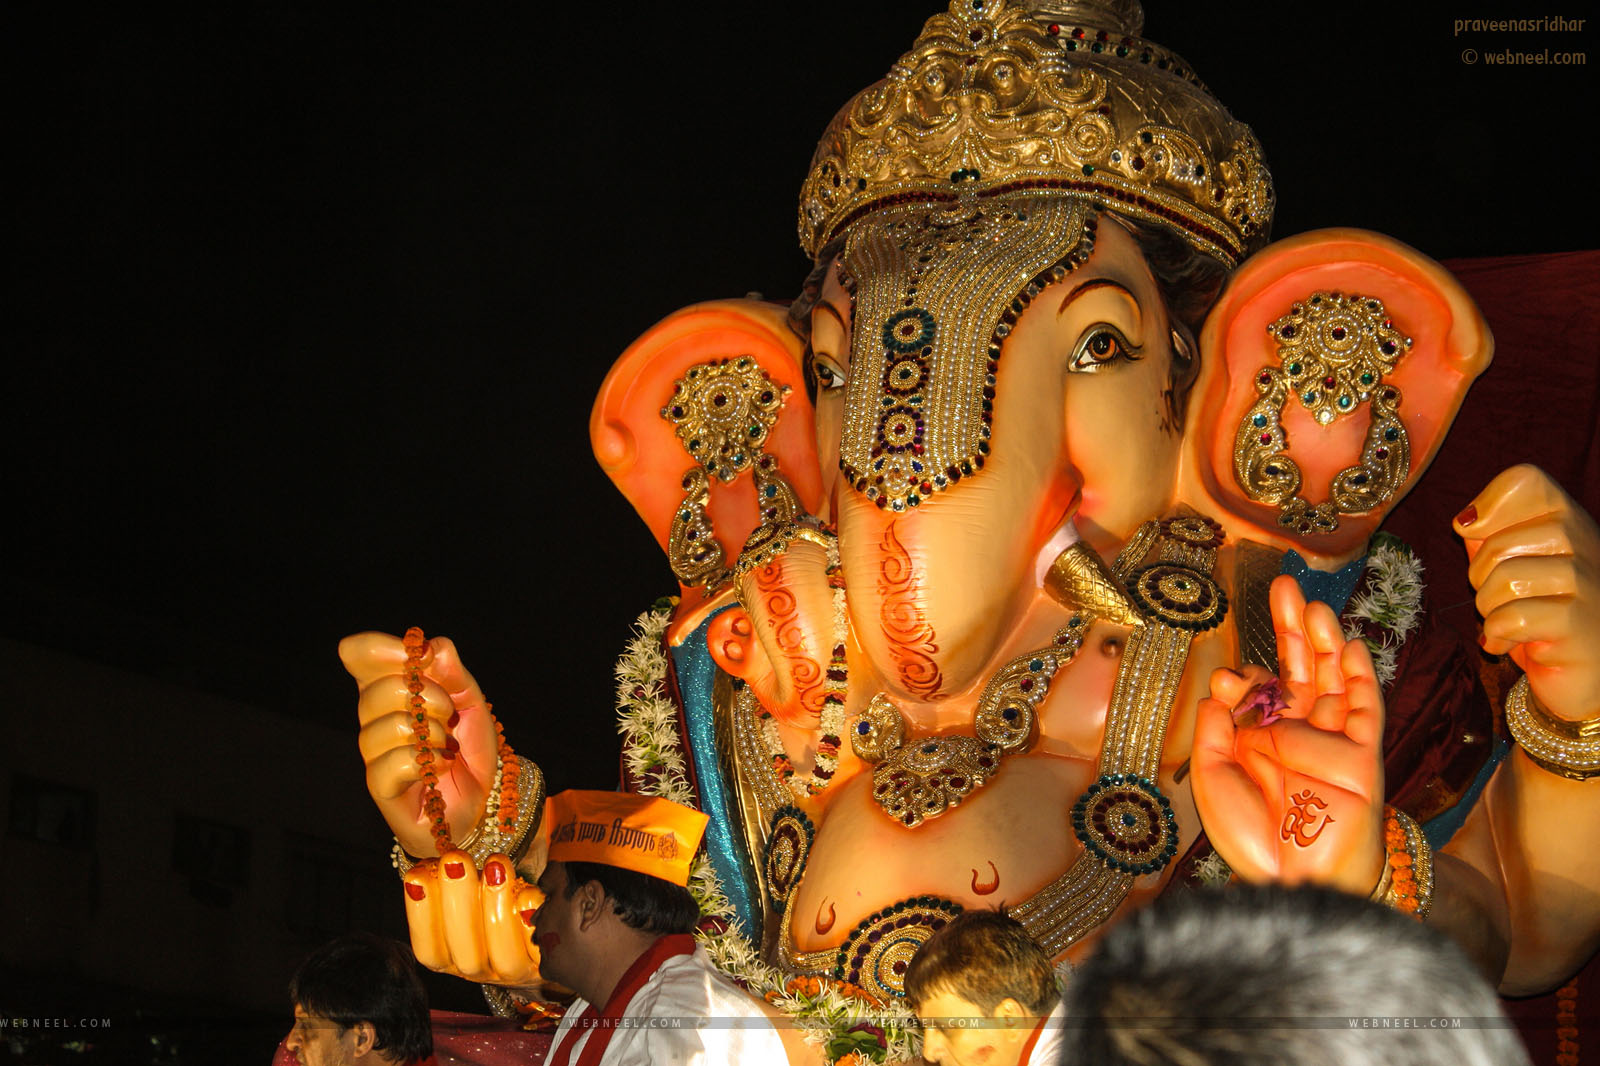 ganesh chathurthi photo by praveenasridhar